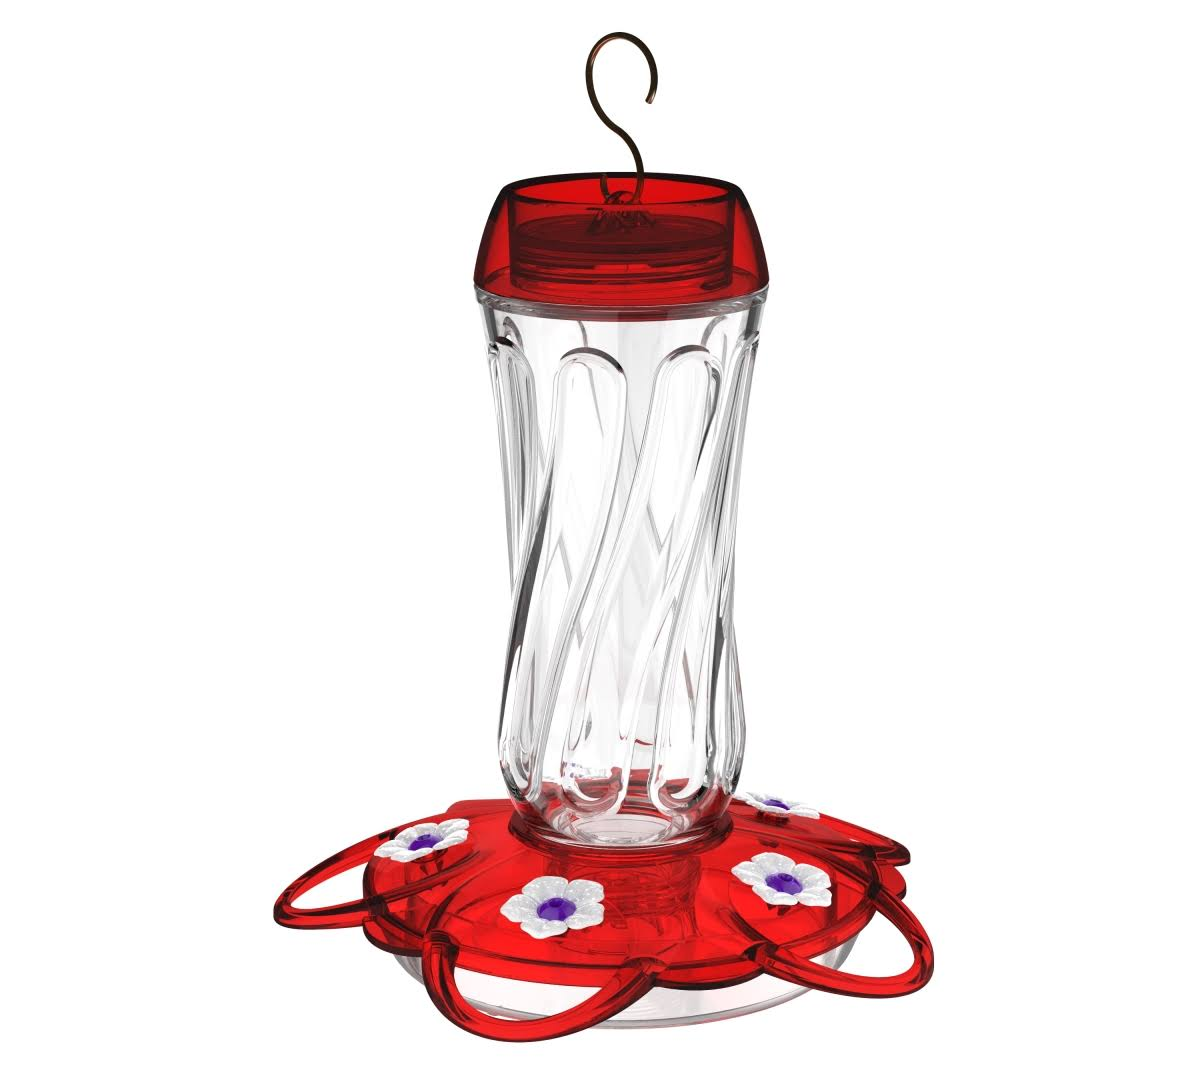 Classic Brands Orion Hummingbird Feeder